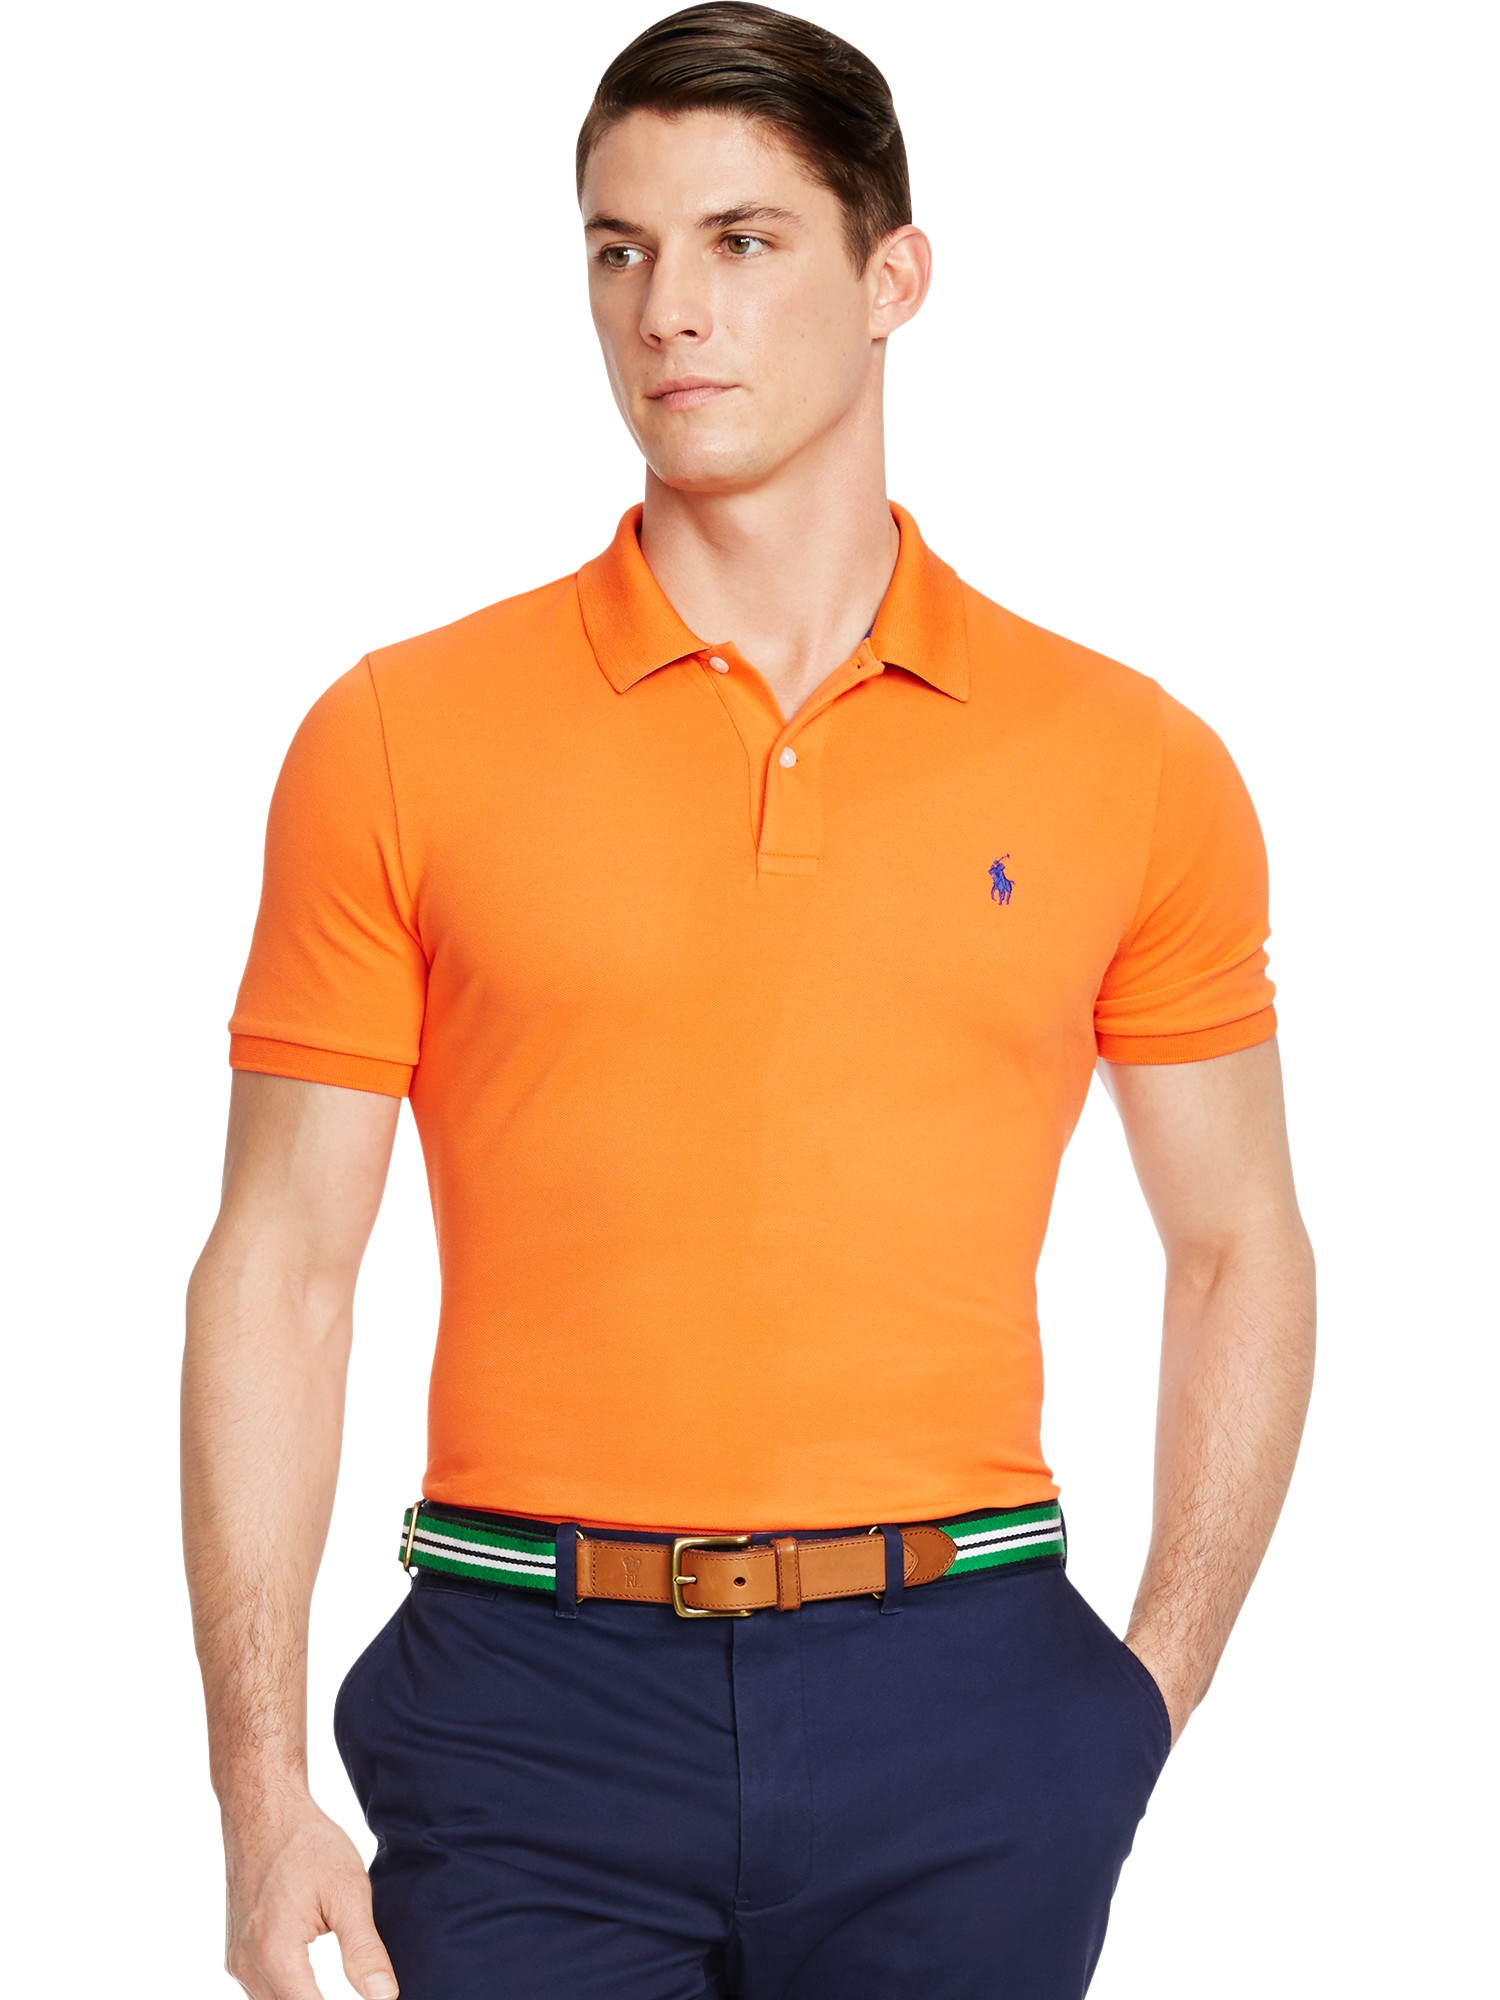 pink pony polo golf by short sleeve polo shirt in orange. Black Bedroom Furniture Sets. Home Design Ideas